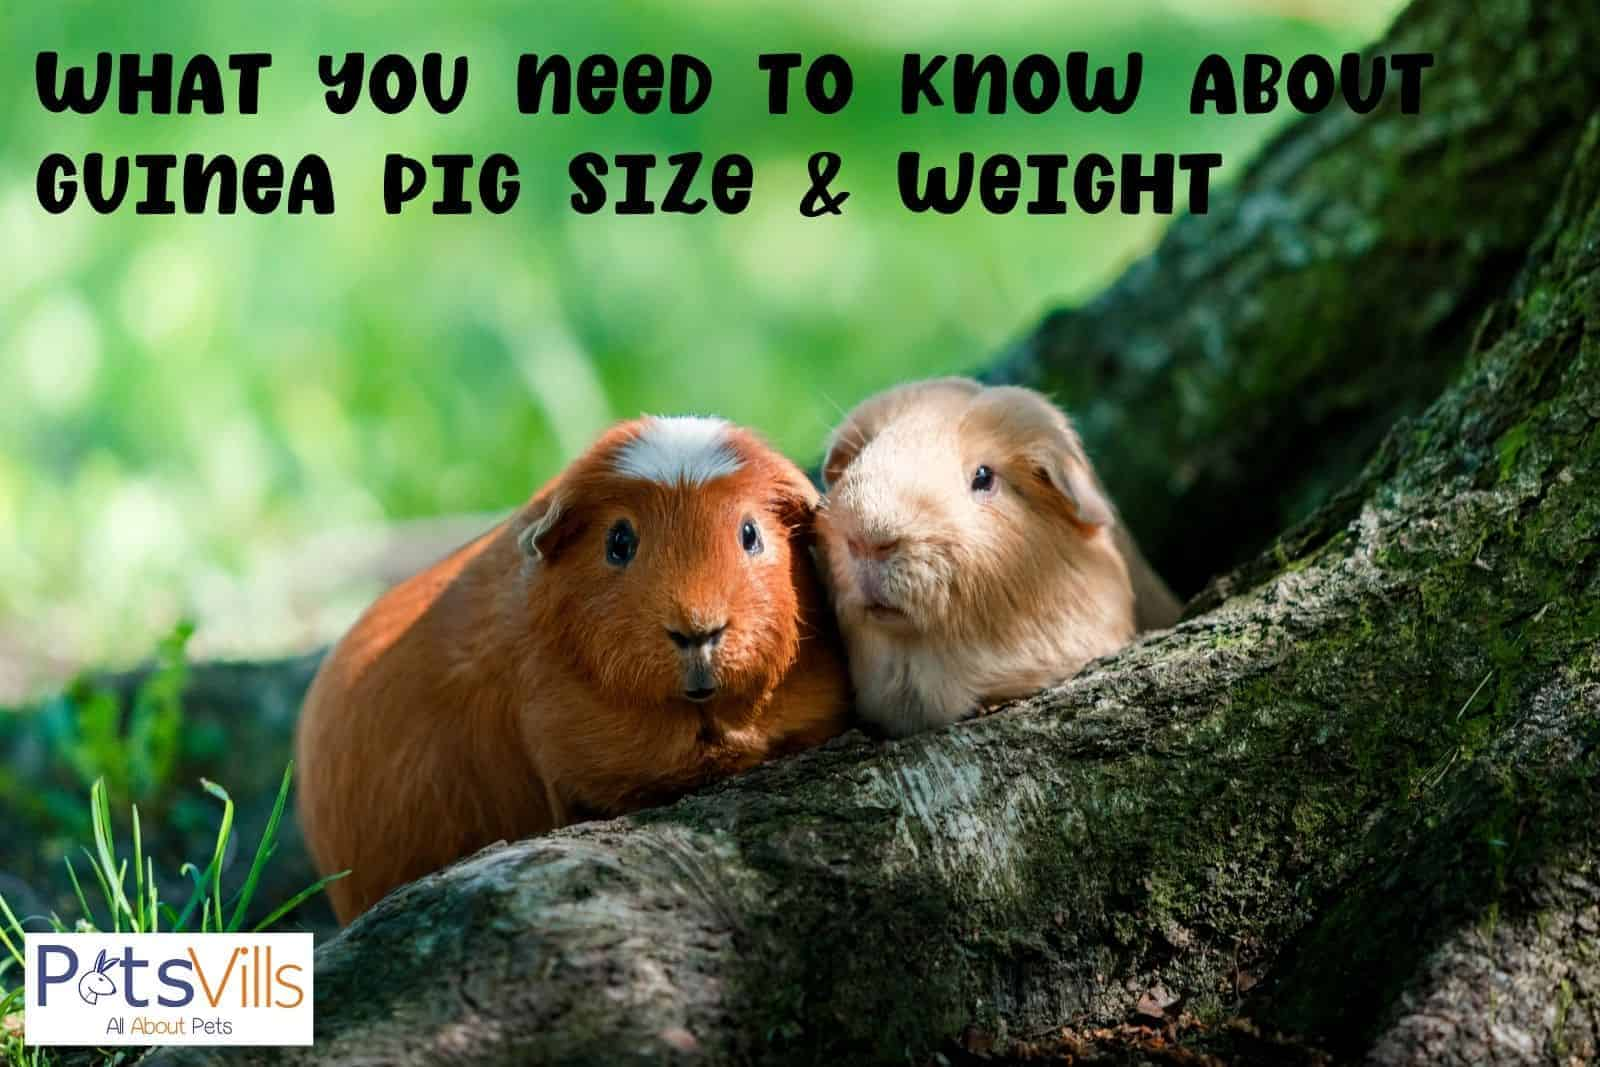 two lovely guinea pigs sitting on top of a tree's root: what is their guinea pig size and weight?